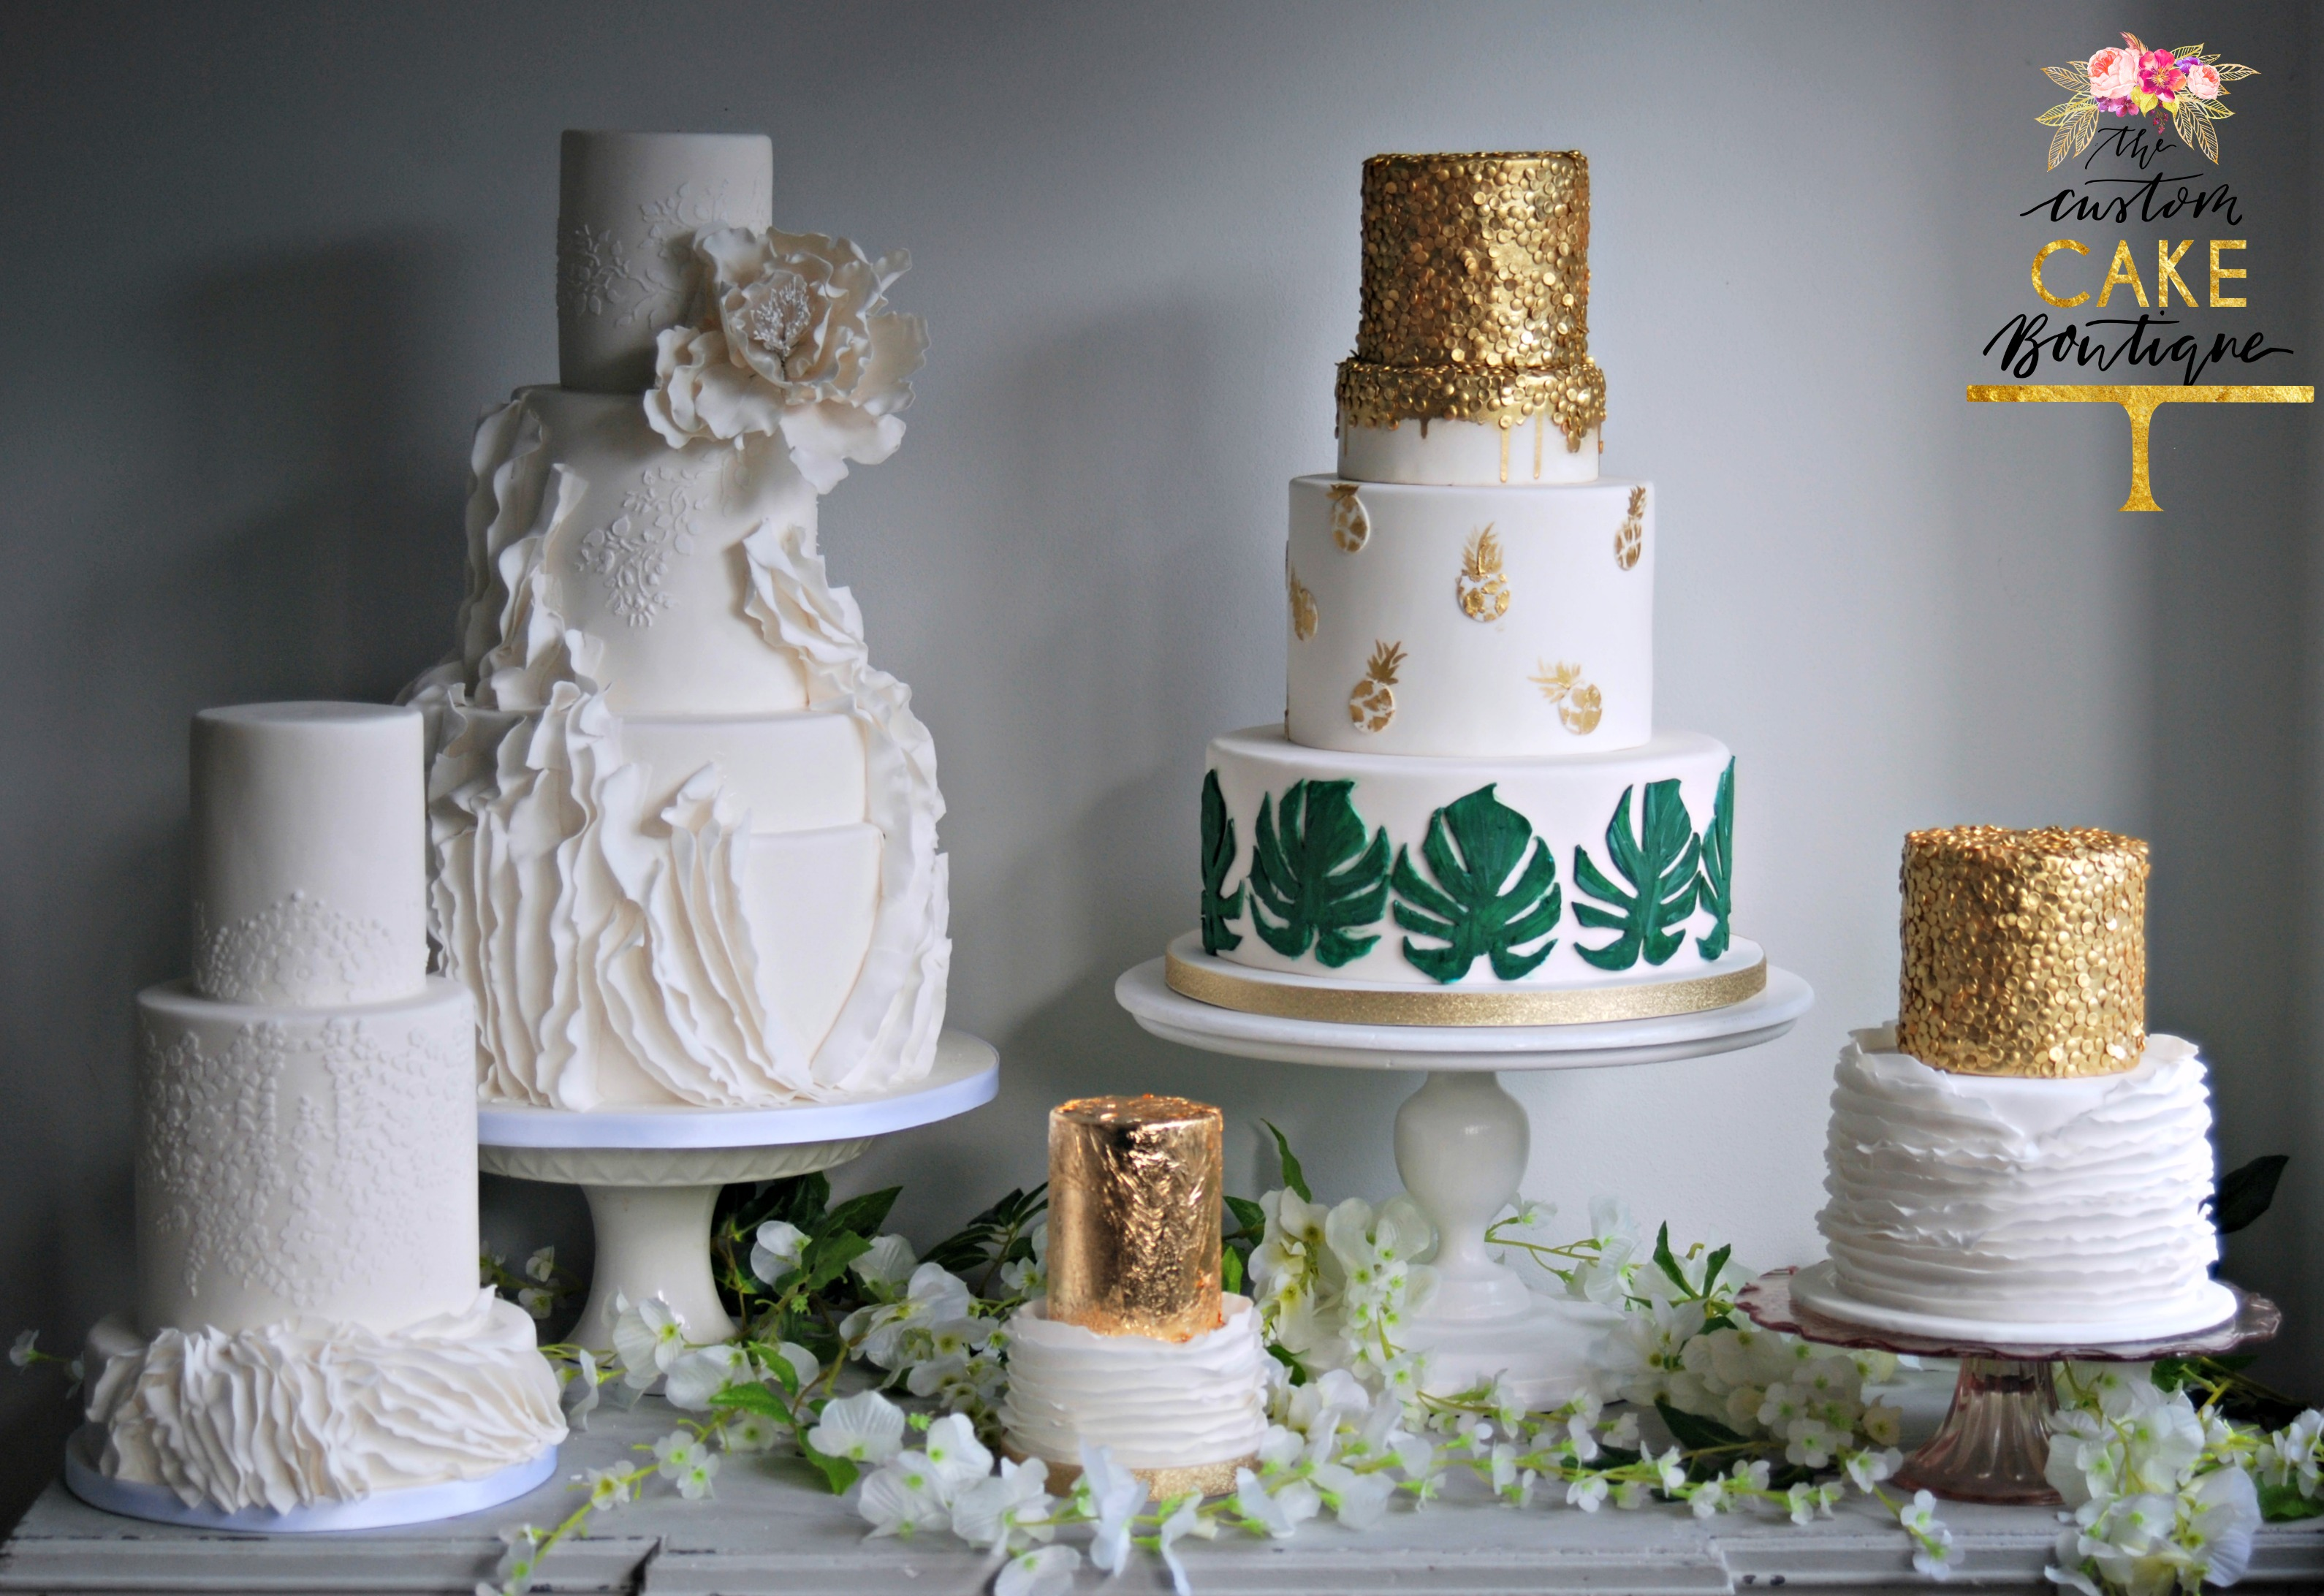 Deciding The Size Of Your Wedding Cake